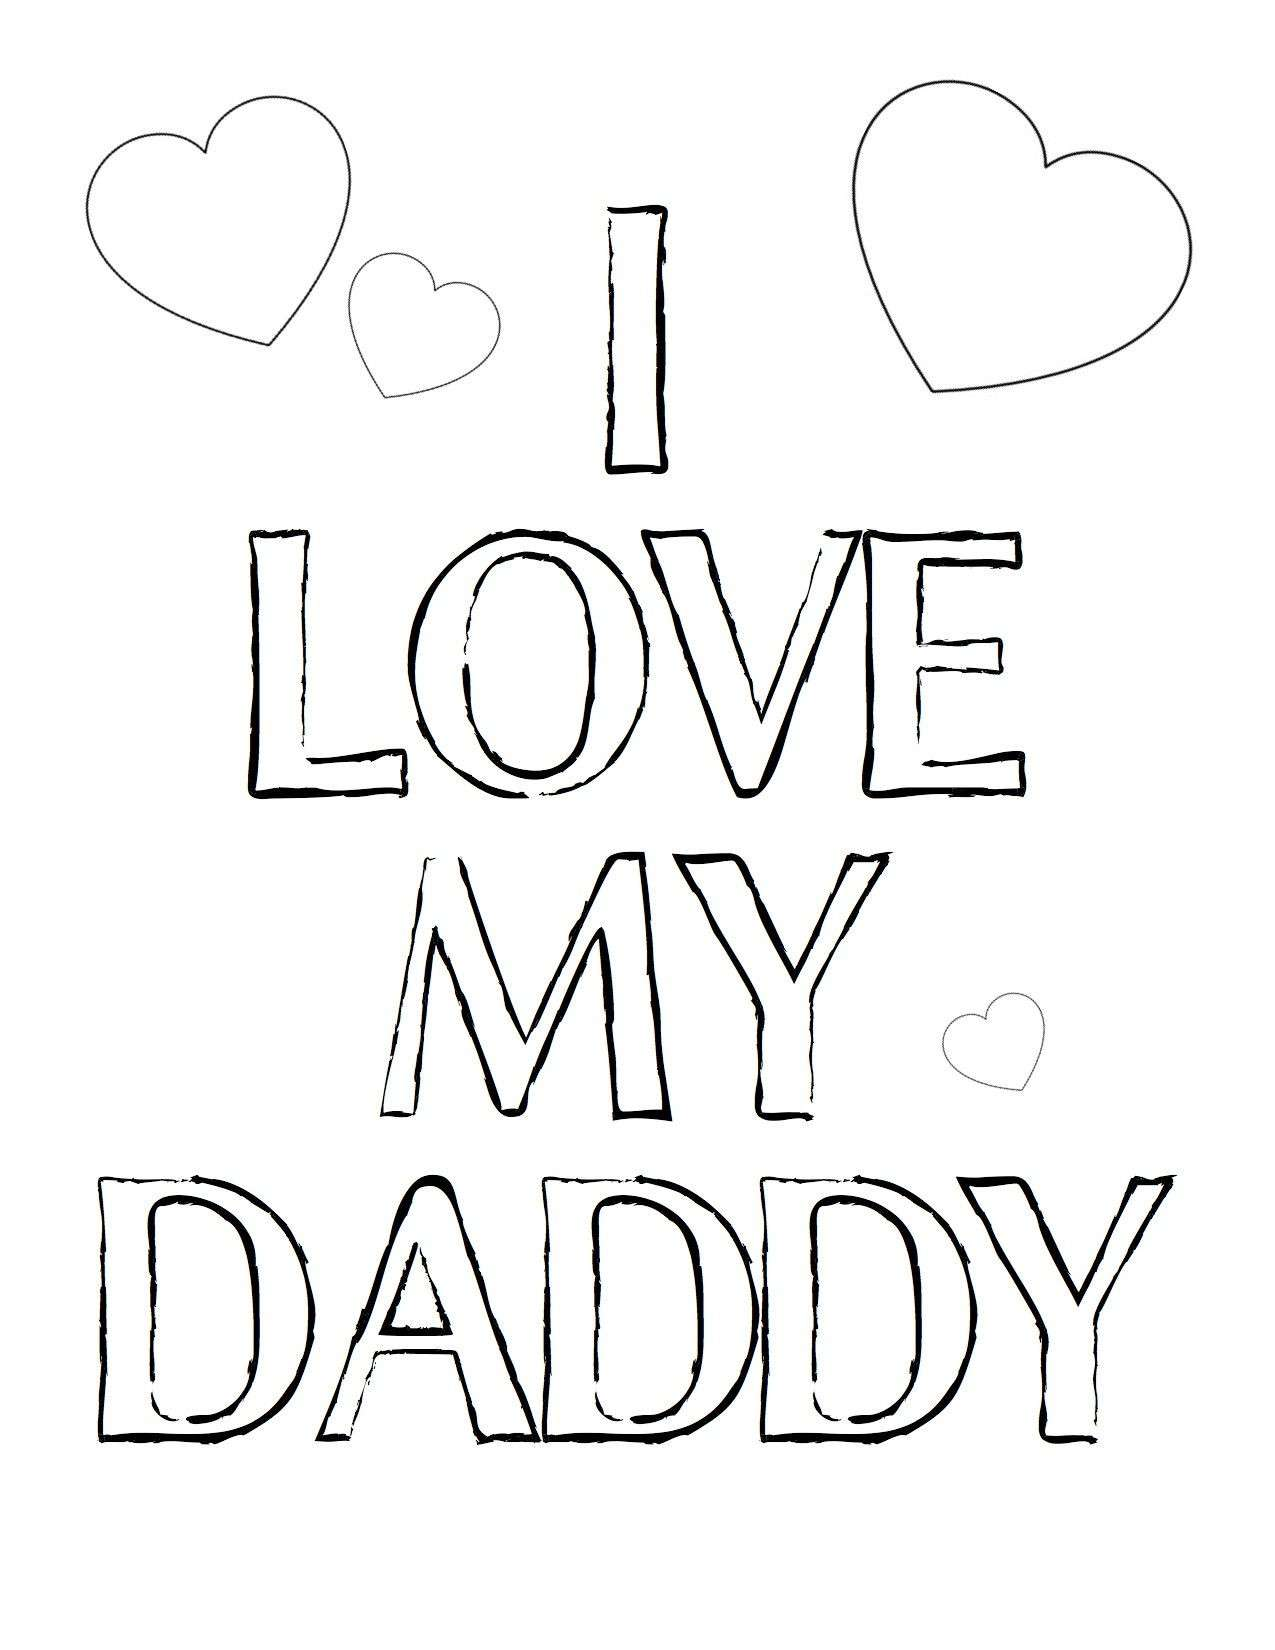 Merry Christmas Dad Coloring Pages With I Love My Mom And